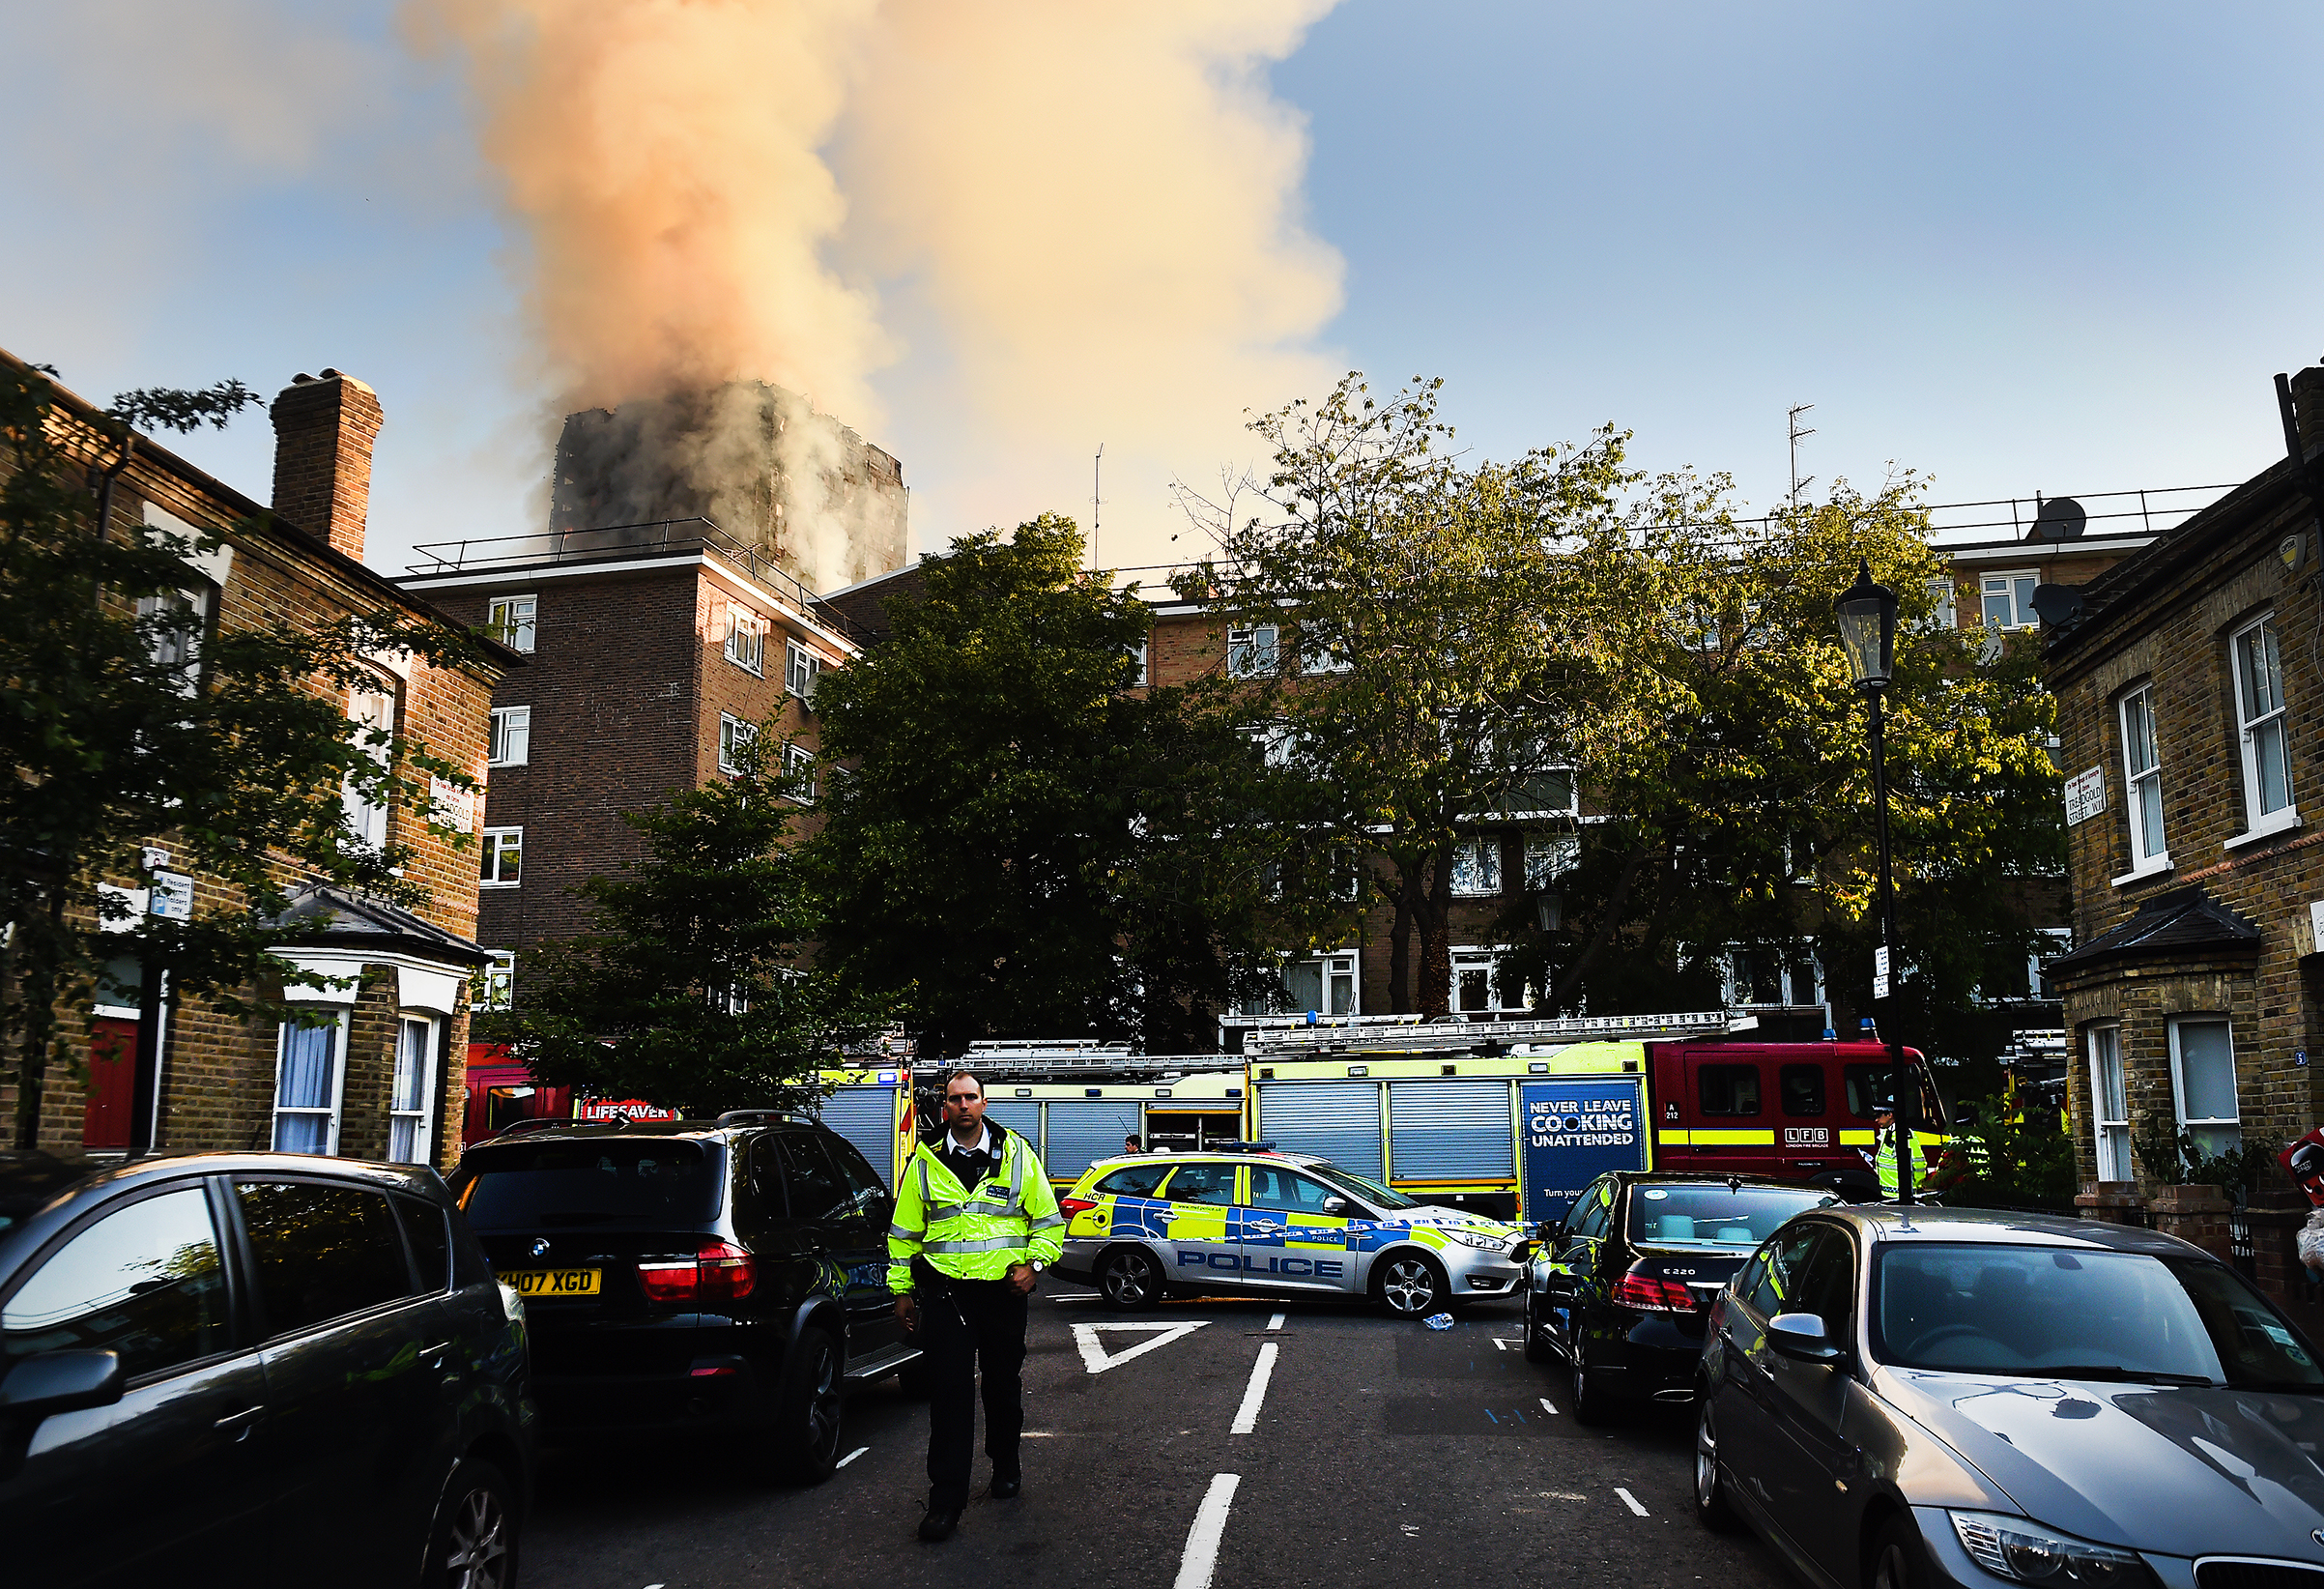 Police and rescue services operate near the fire at the Grenfell Tower apartment block in North Kensington, London, on June 14, 2017.